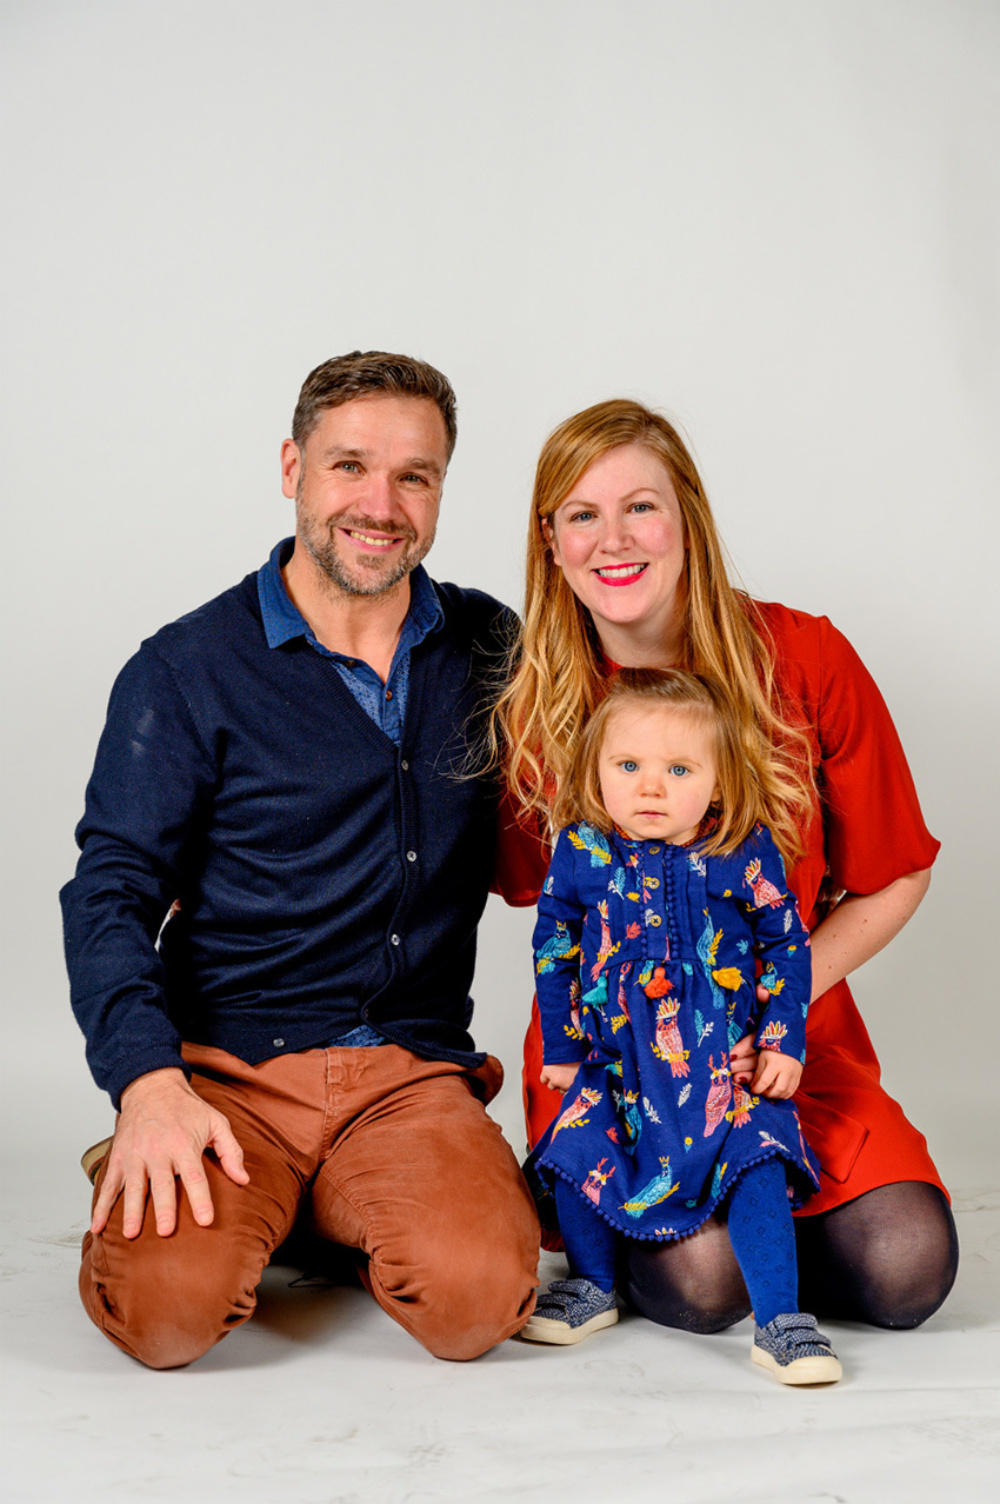 A couple posing with their child in front of a white background